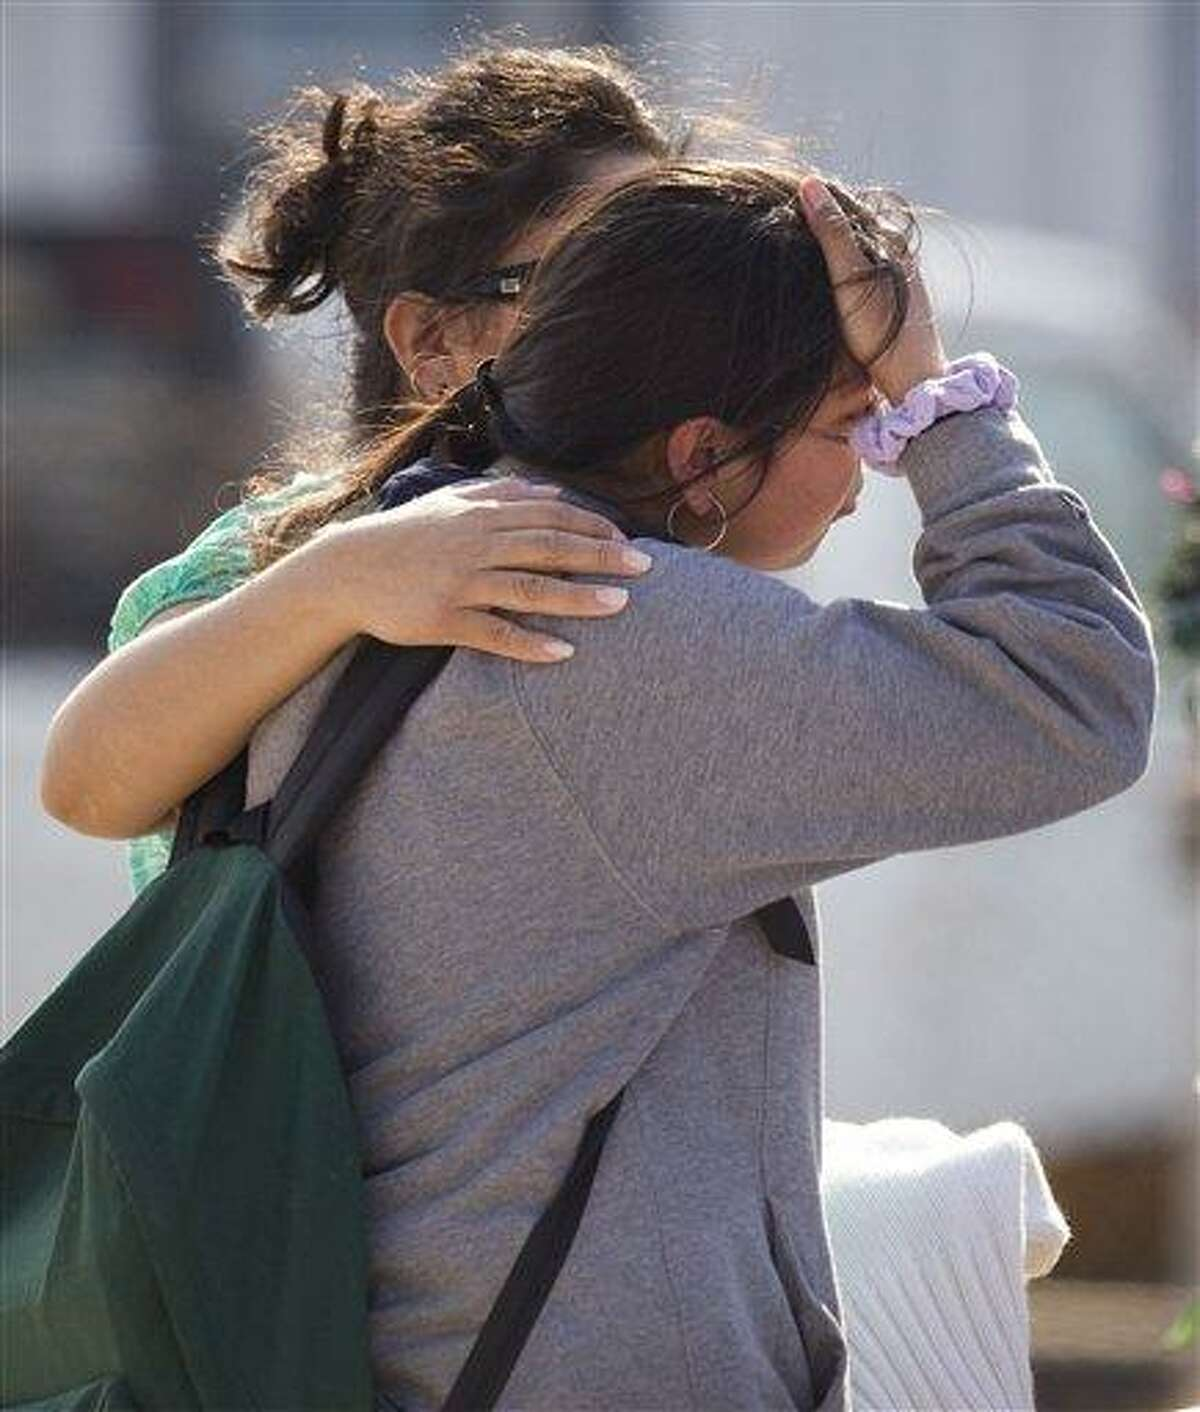 Ana Leal, left, embraces Lone Star College student Sabrina Cuellar after she was evacuated from the campus following a shooting at the north Harris County school Tuesday, Jan. 22, 2013, in Houston. The shooting wounded three people and sent students fleeing for safety as officials placed the campus on lockdown, officials said. (AP Photo/Houston Chronicle, Brett Coomer) MANDATORY CREDIT